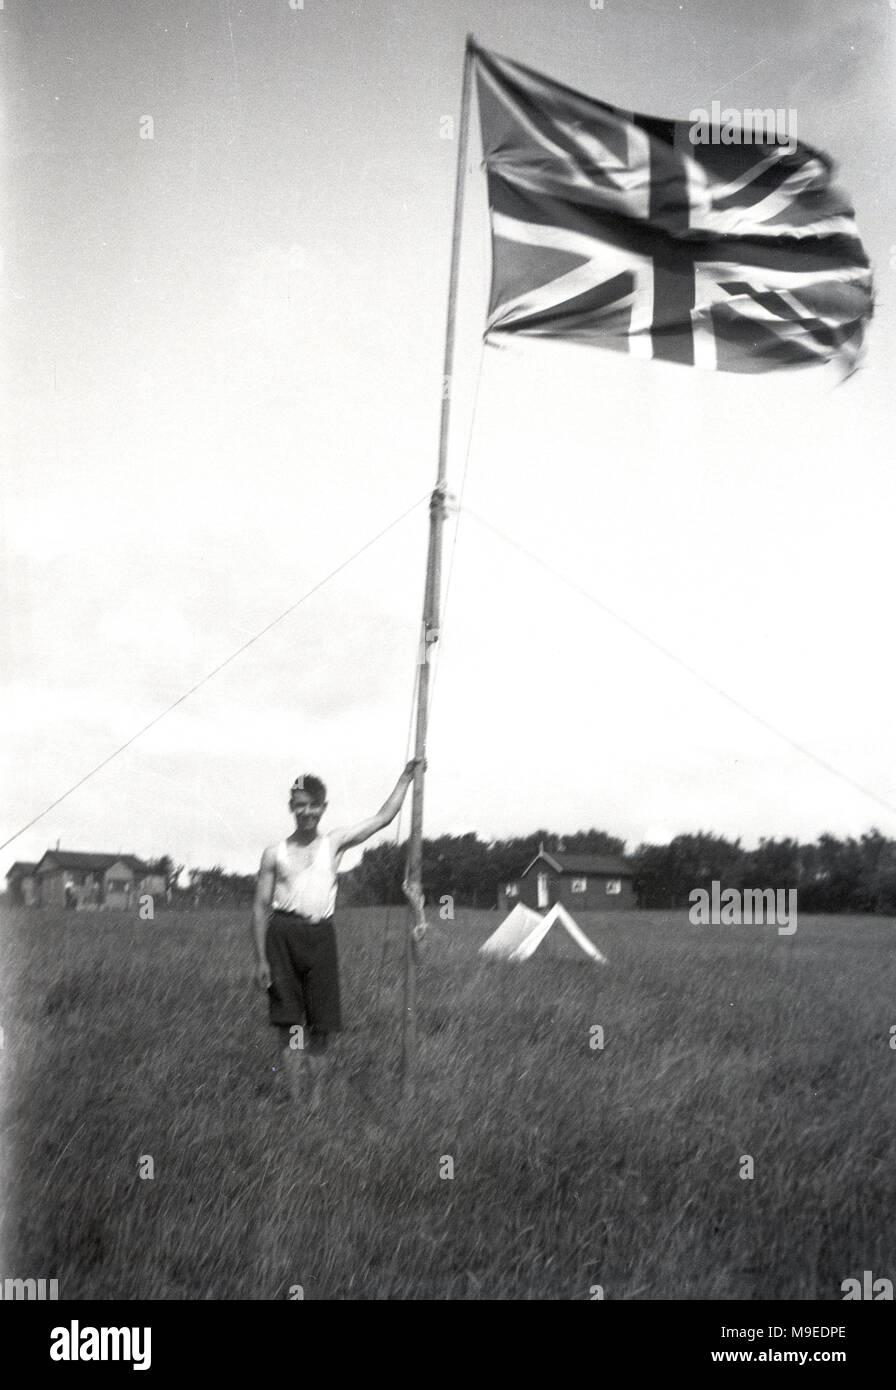 1934, historical, a young British scout in a grassy field at a scout camp in Dublin, Ireland, stands poudly next to tall flagpole holding a Union Jack flag/ - Stock Image